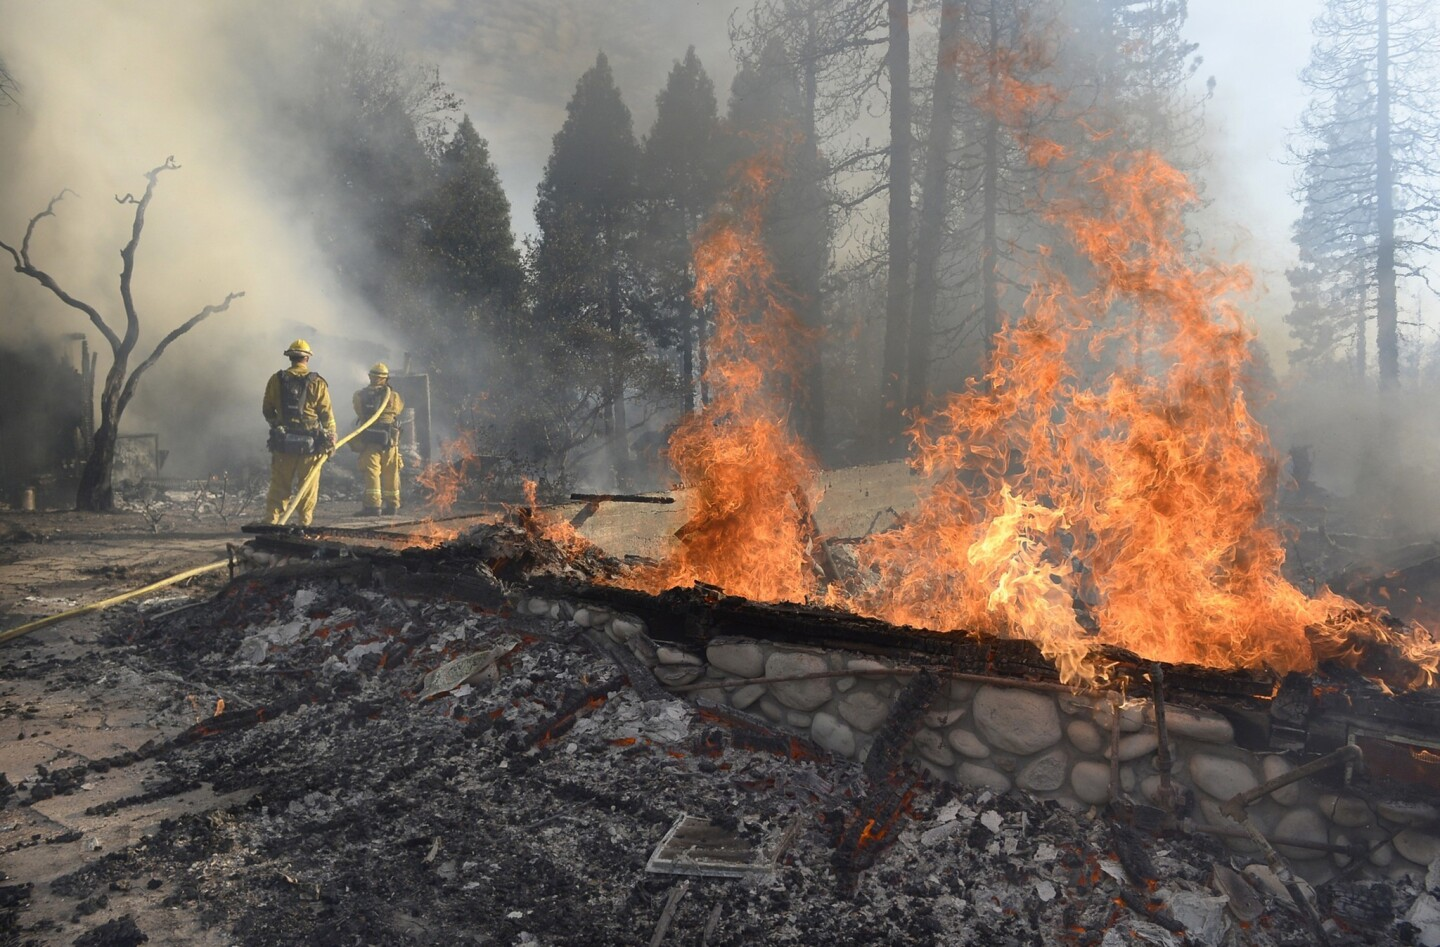 Firefighters douse flames from an outbuilding on Cedar Drive in Oakhurst, Calif., on Sunday.